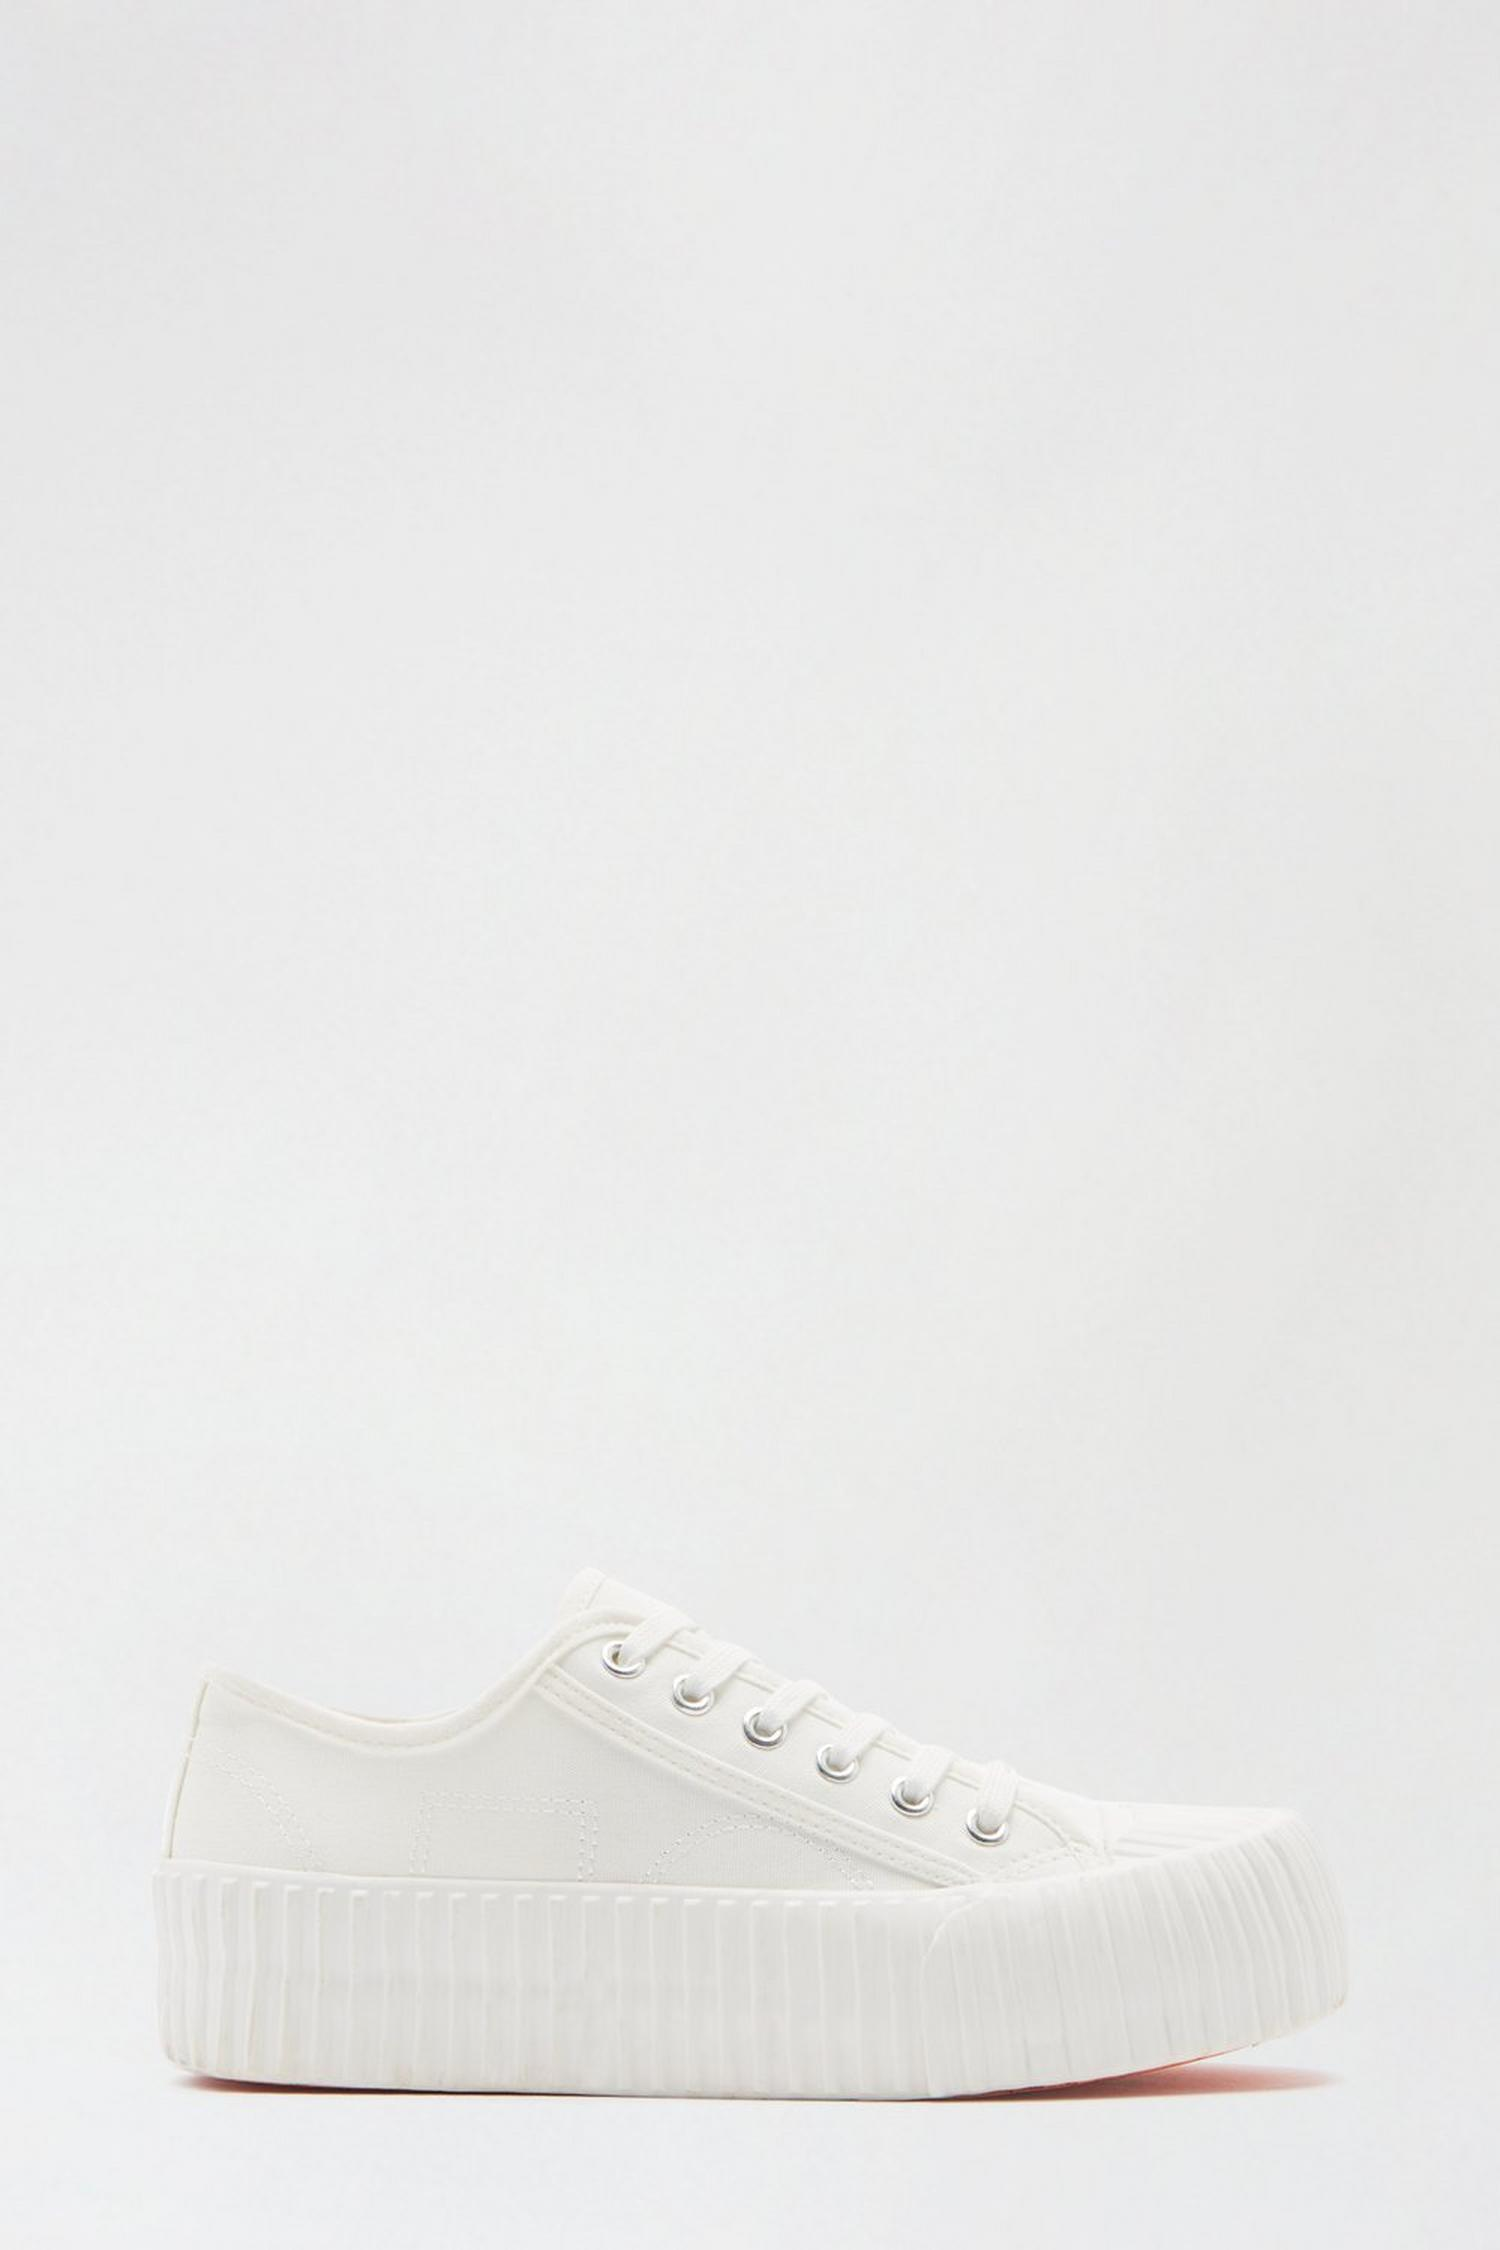 173 White Neptune Flatform Lace Up Trainer image number 1